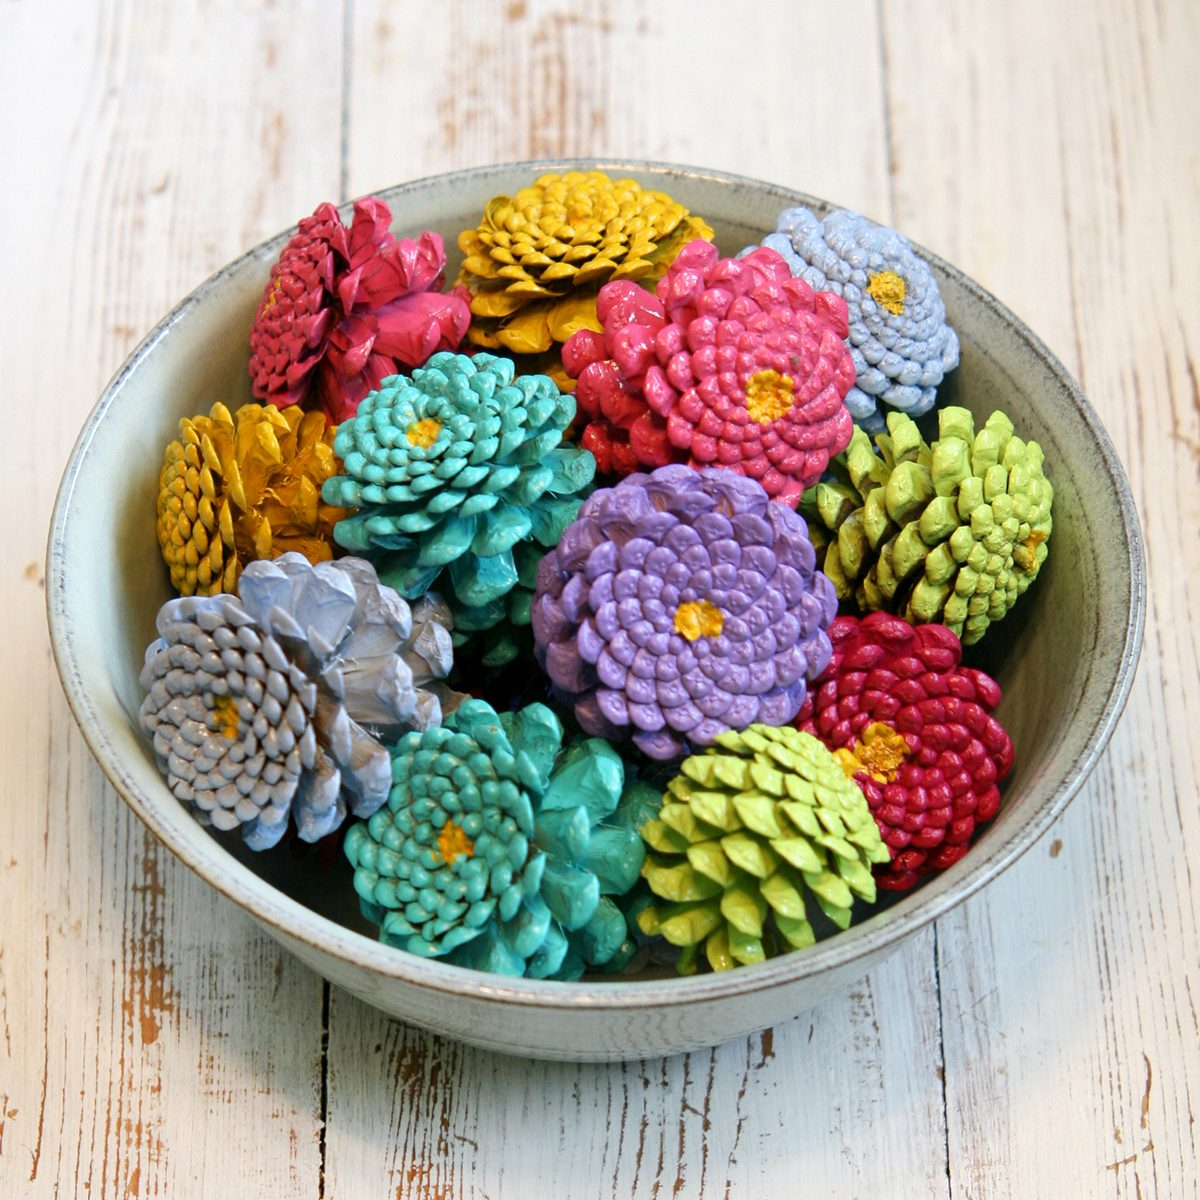 7 Easy Spring Crafts to Brighten Your Day